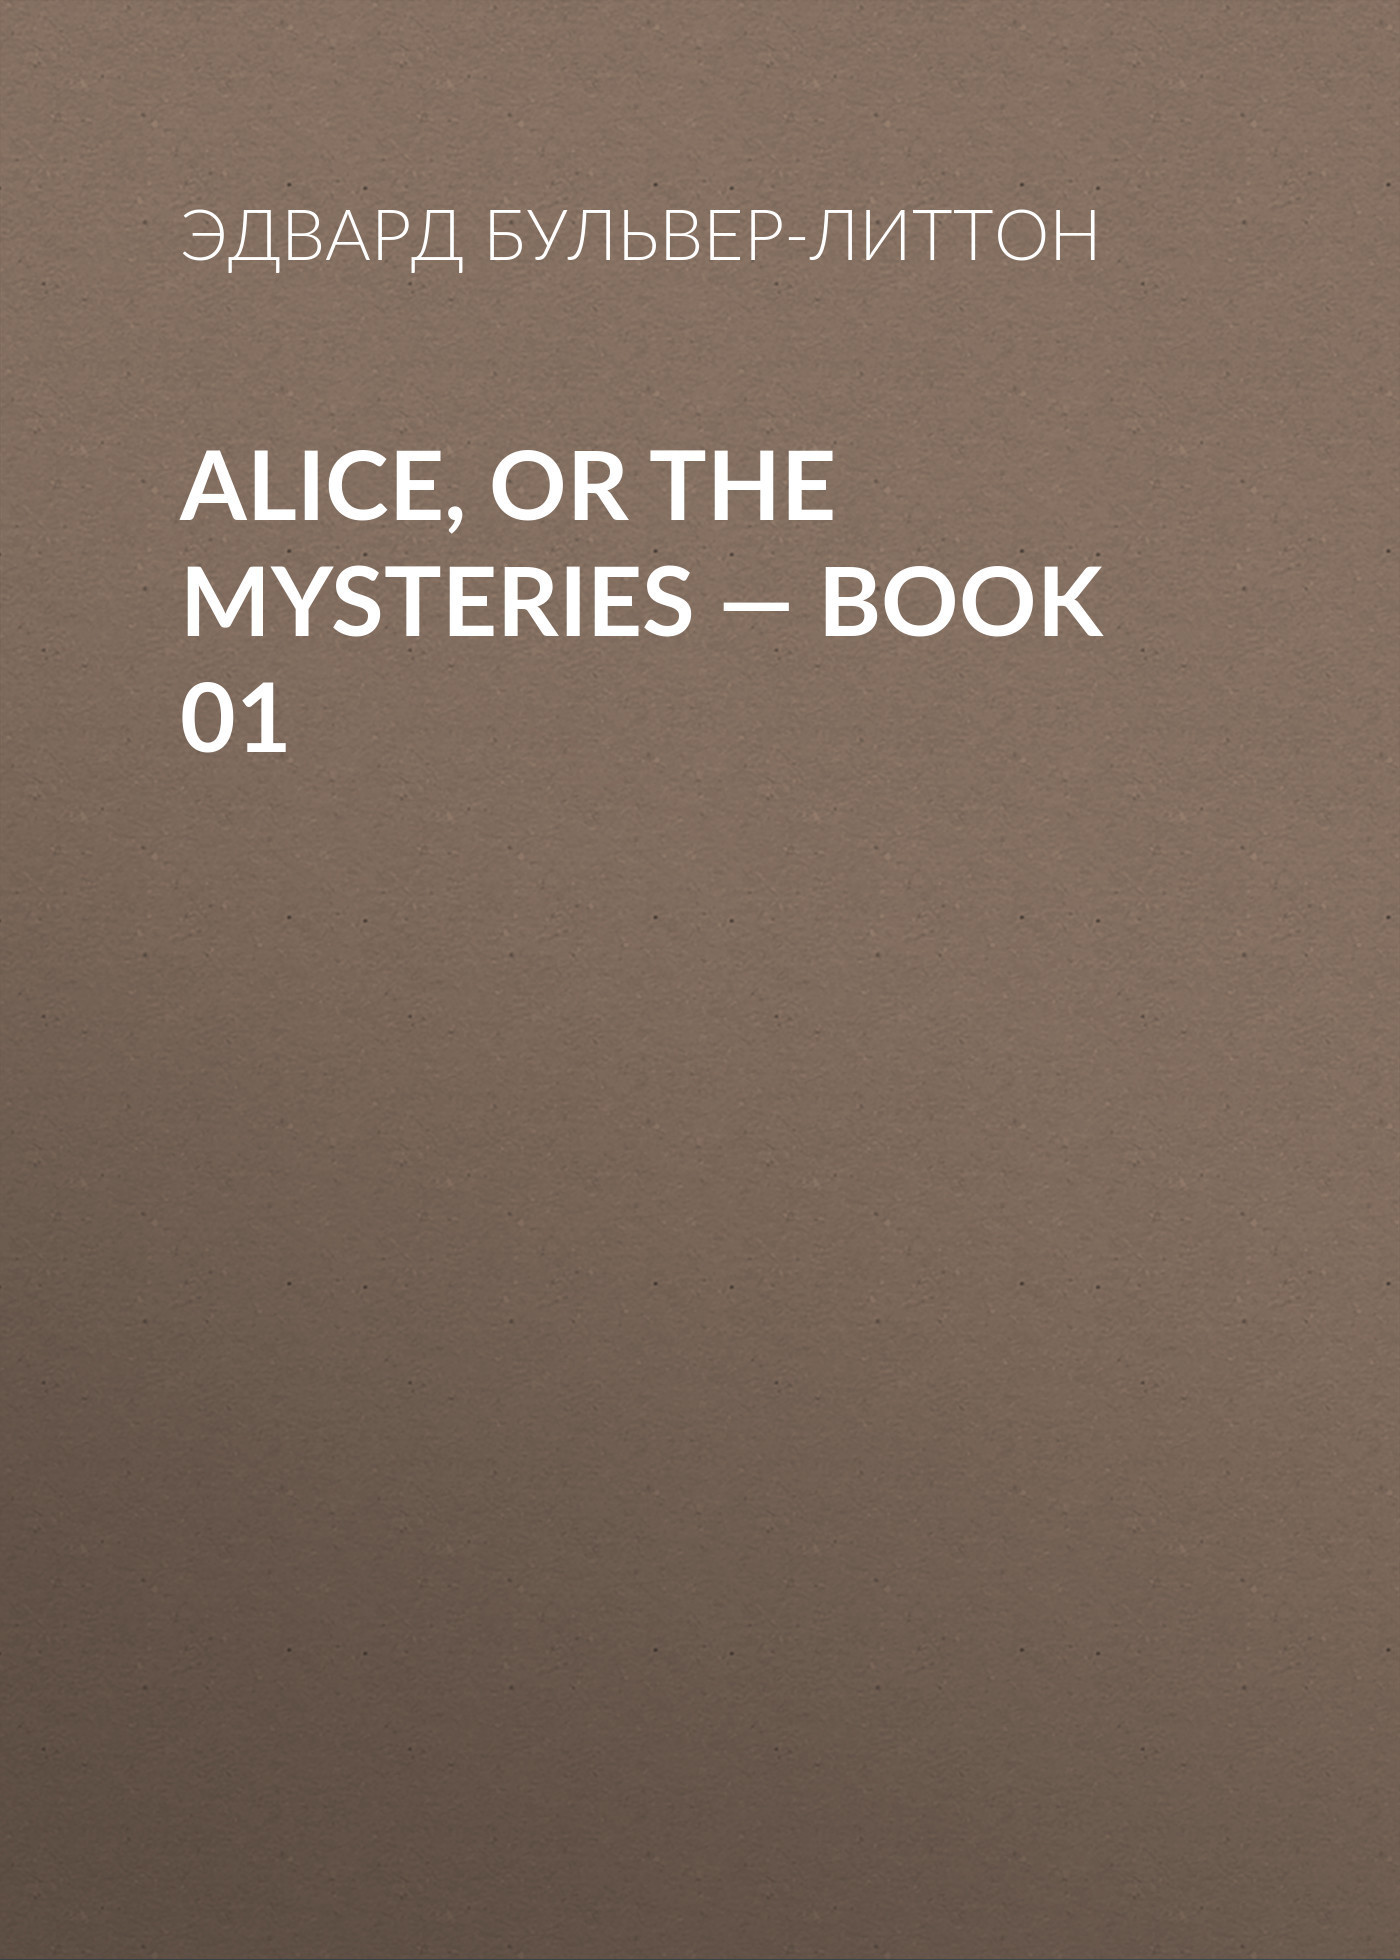 Alice, or the Mysteries — Book 01